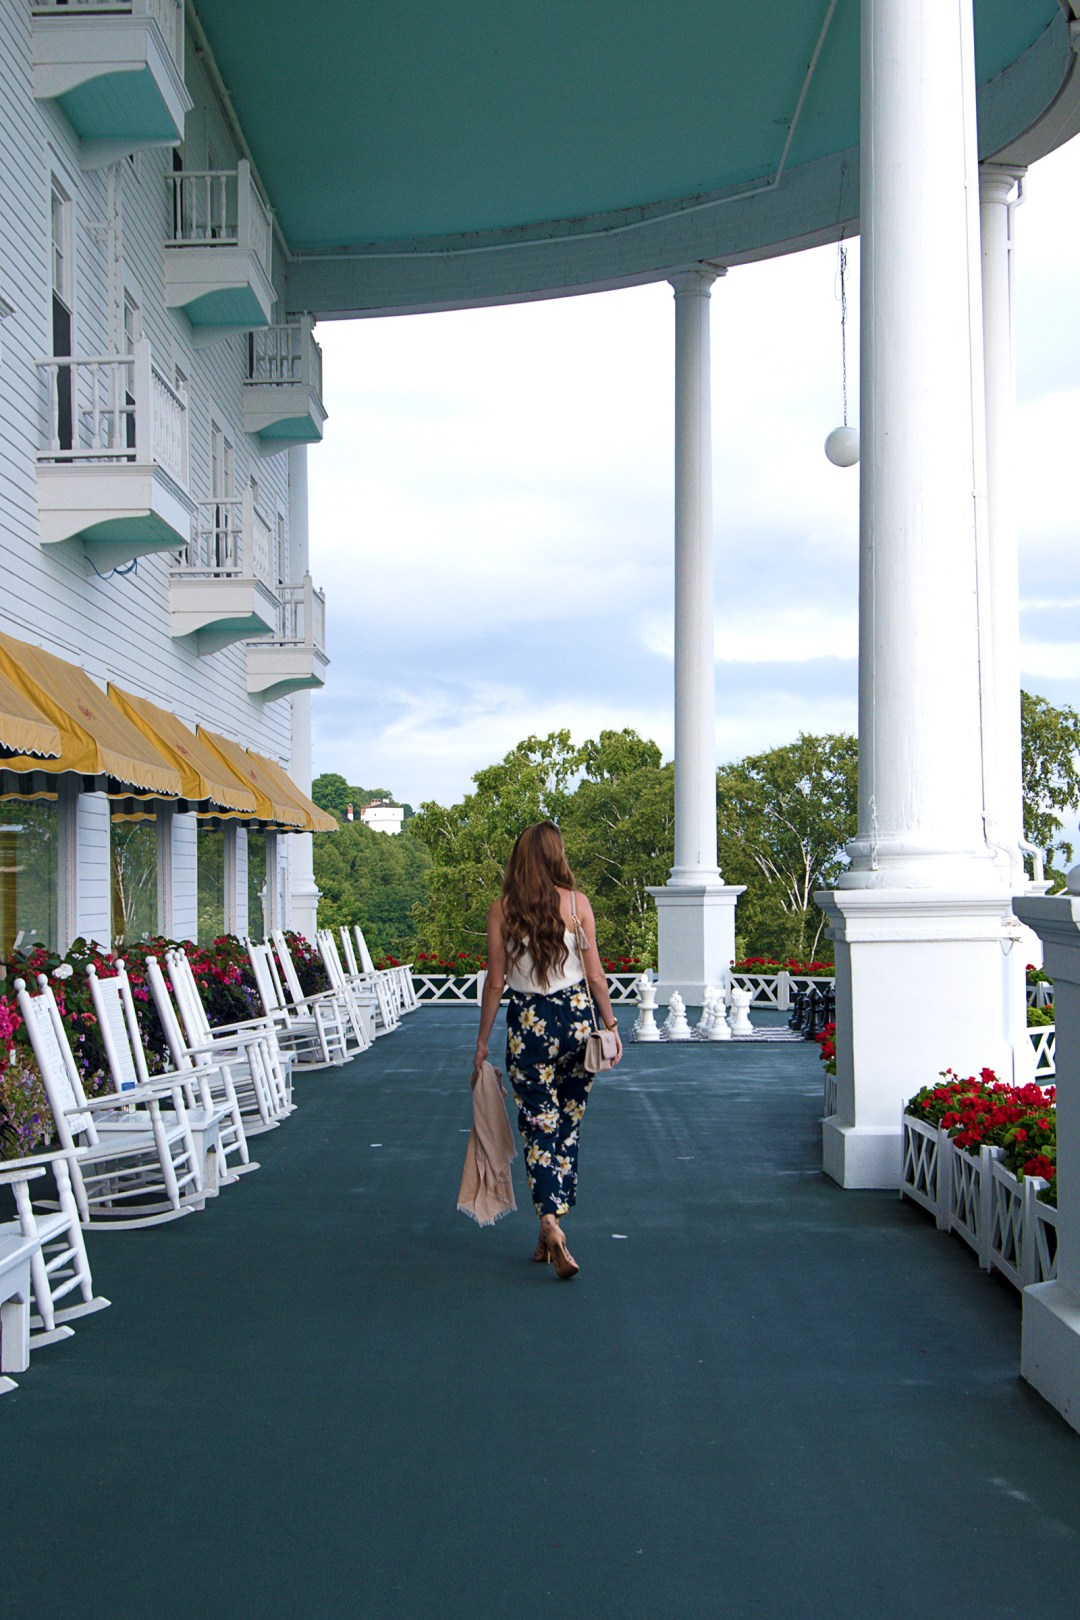 I'm sharing my weekend getaway outfit from our recent trip to Mackinac Island! These floral pants are my new fav, and pair easily with a simple blouse!